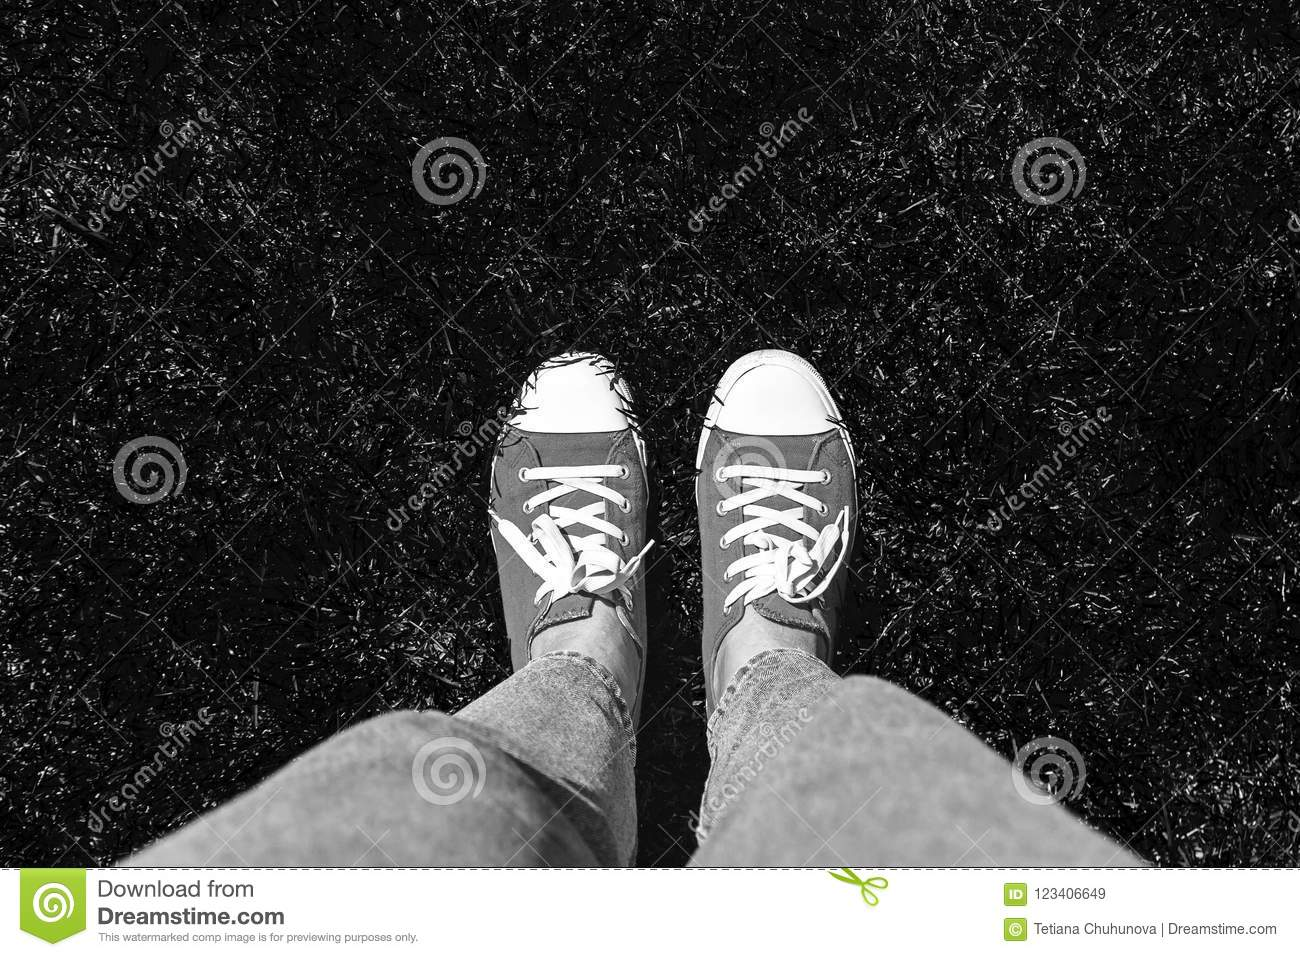 Legs in old sneakers on grass. View from above. Style: abstraction, illustration, monochrome, neon